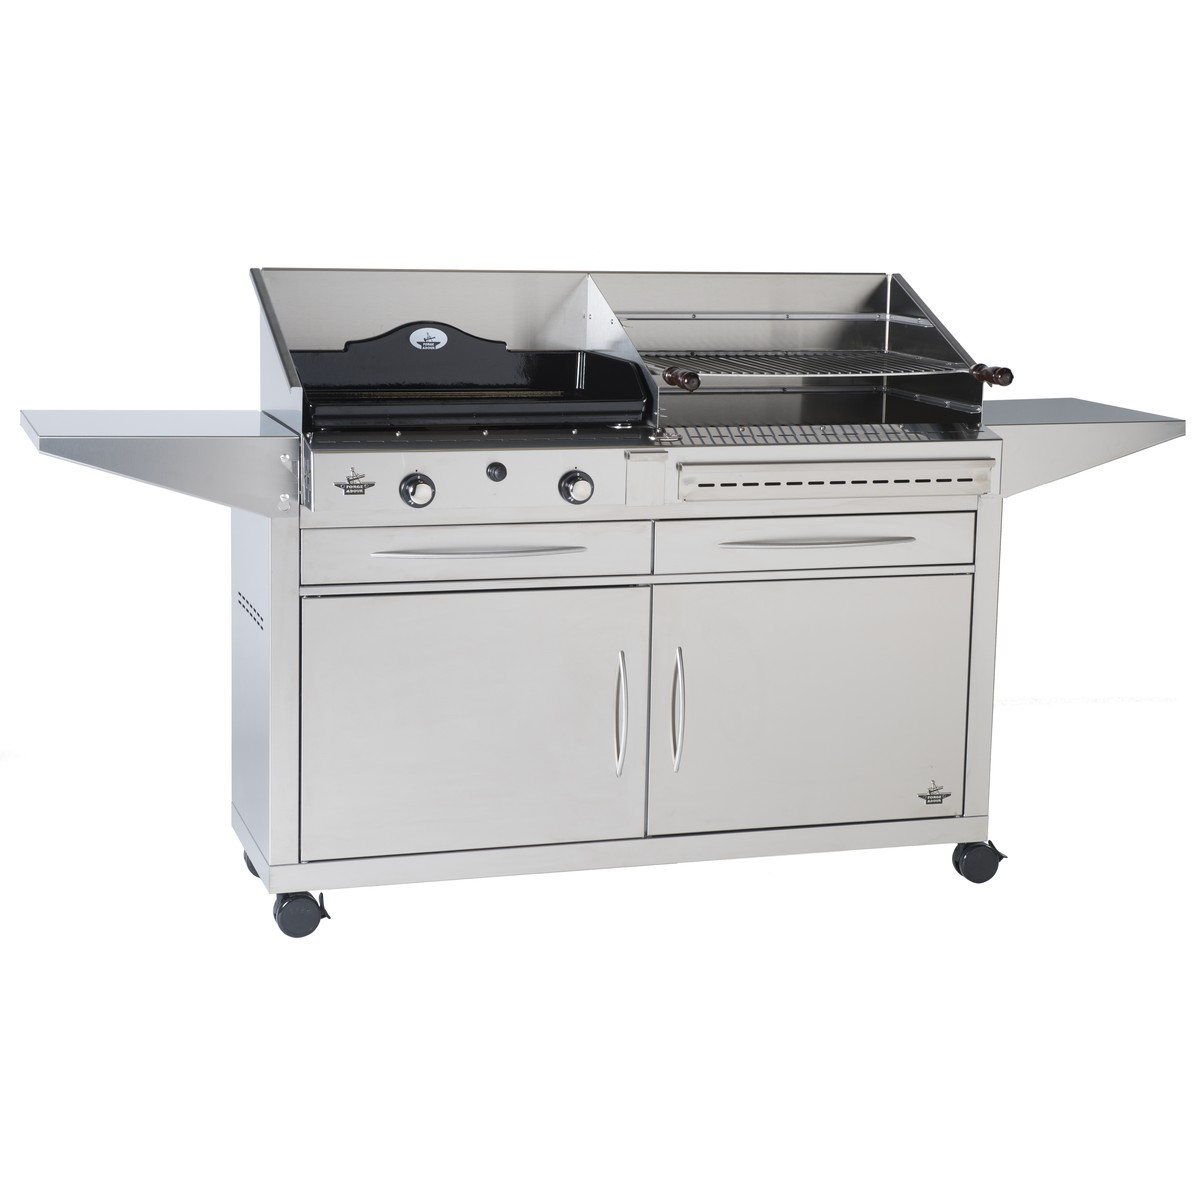 forge adour duo grill charbon et plancha gaz duo 600 avec chariot inox ferm 197x41x89cm. Black Bedroom Furniture Sets. Home Design Ideas